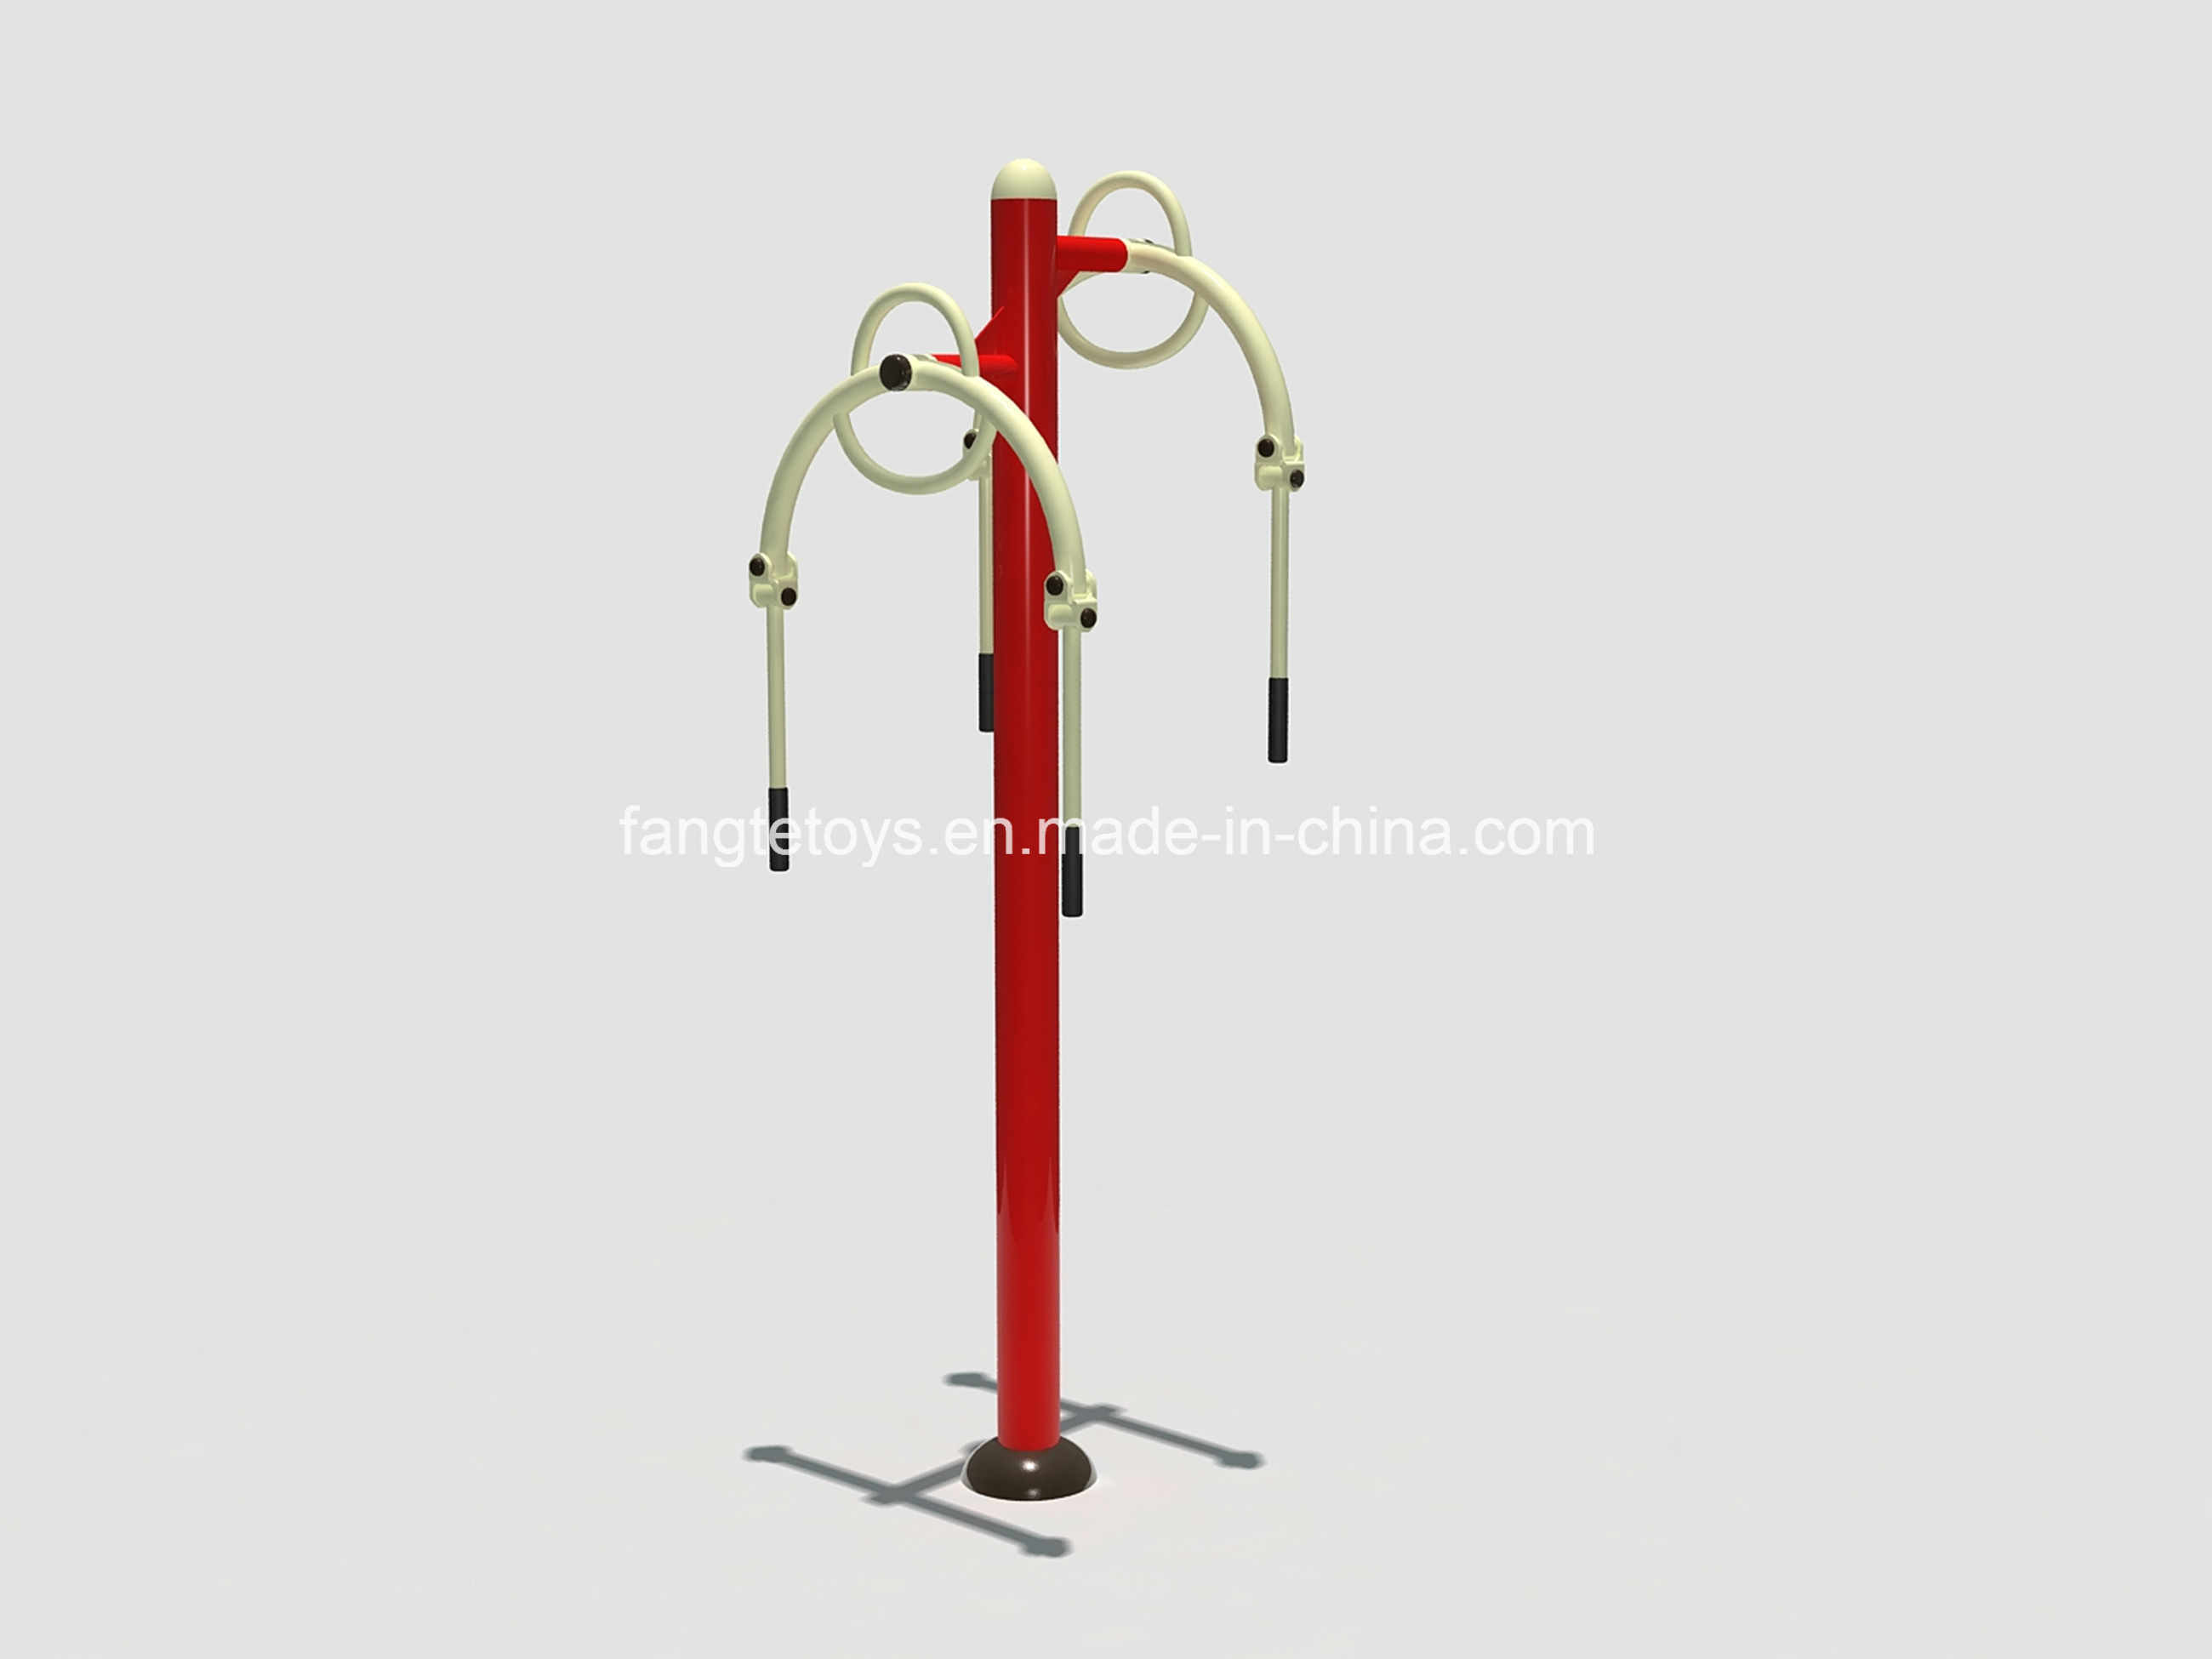 New Design Pushing Machine Outdoor Gym Equipment